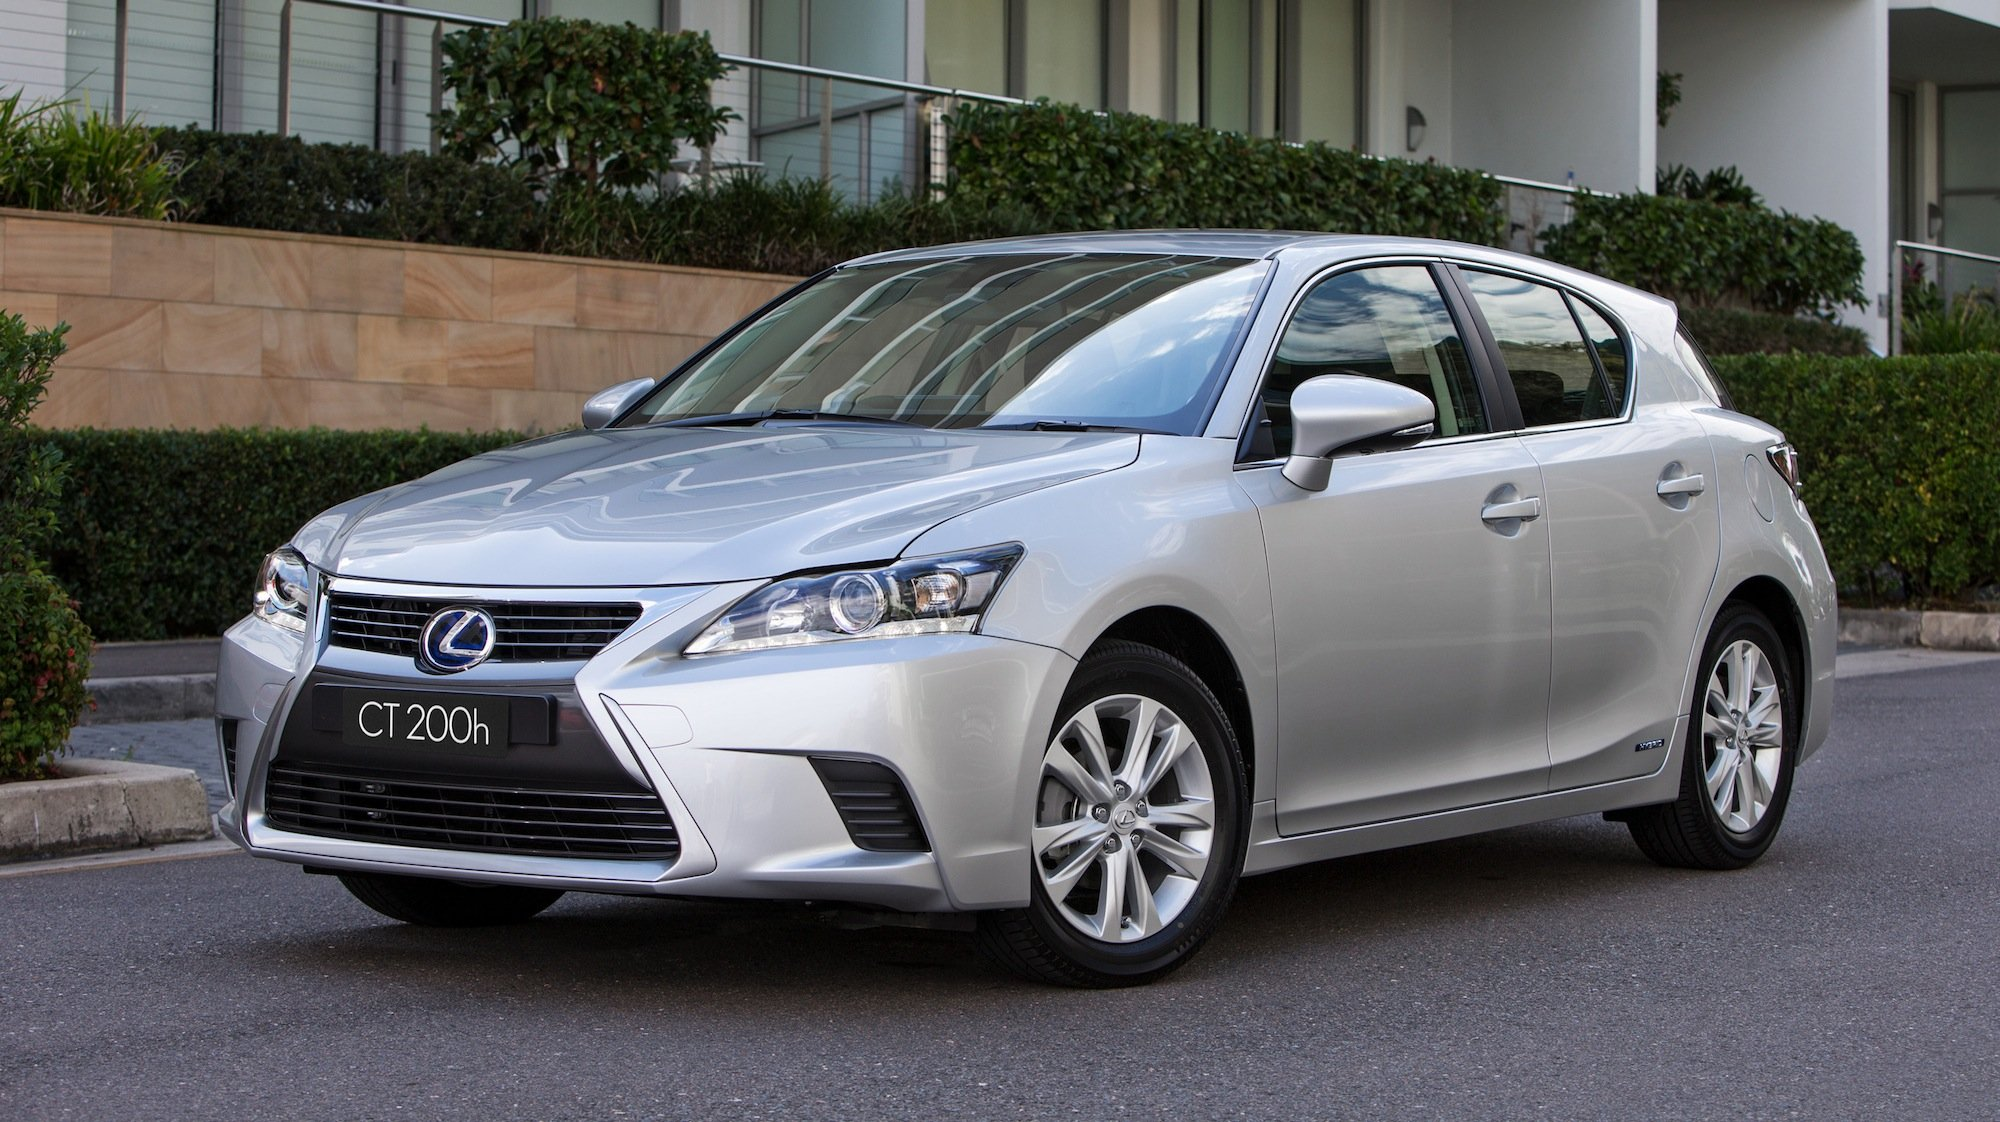 Lexus Ct H Luxury on X Trail Toyota Car